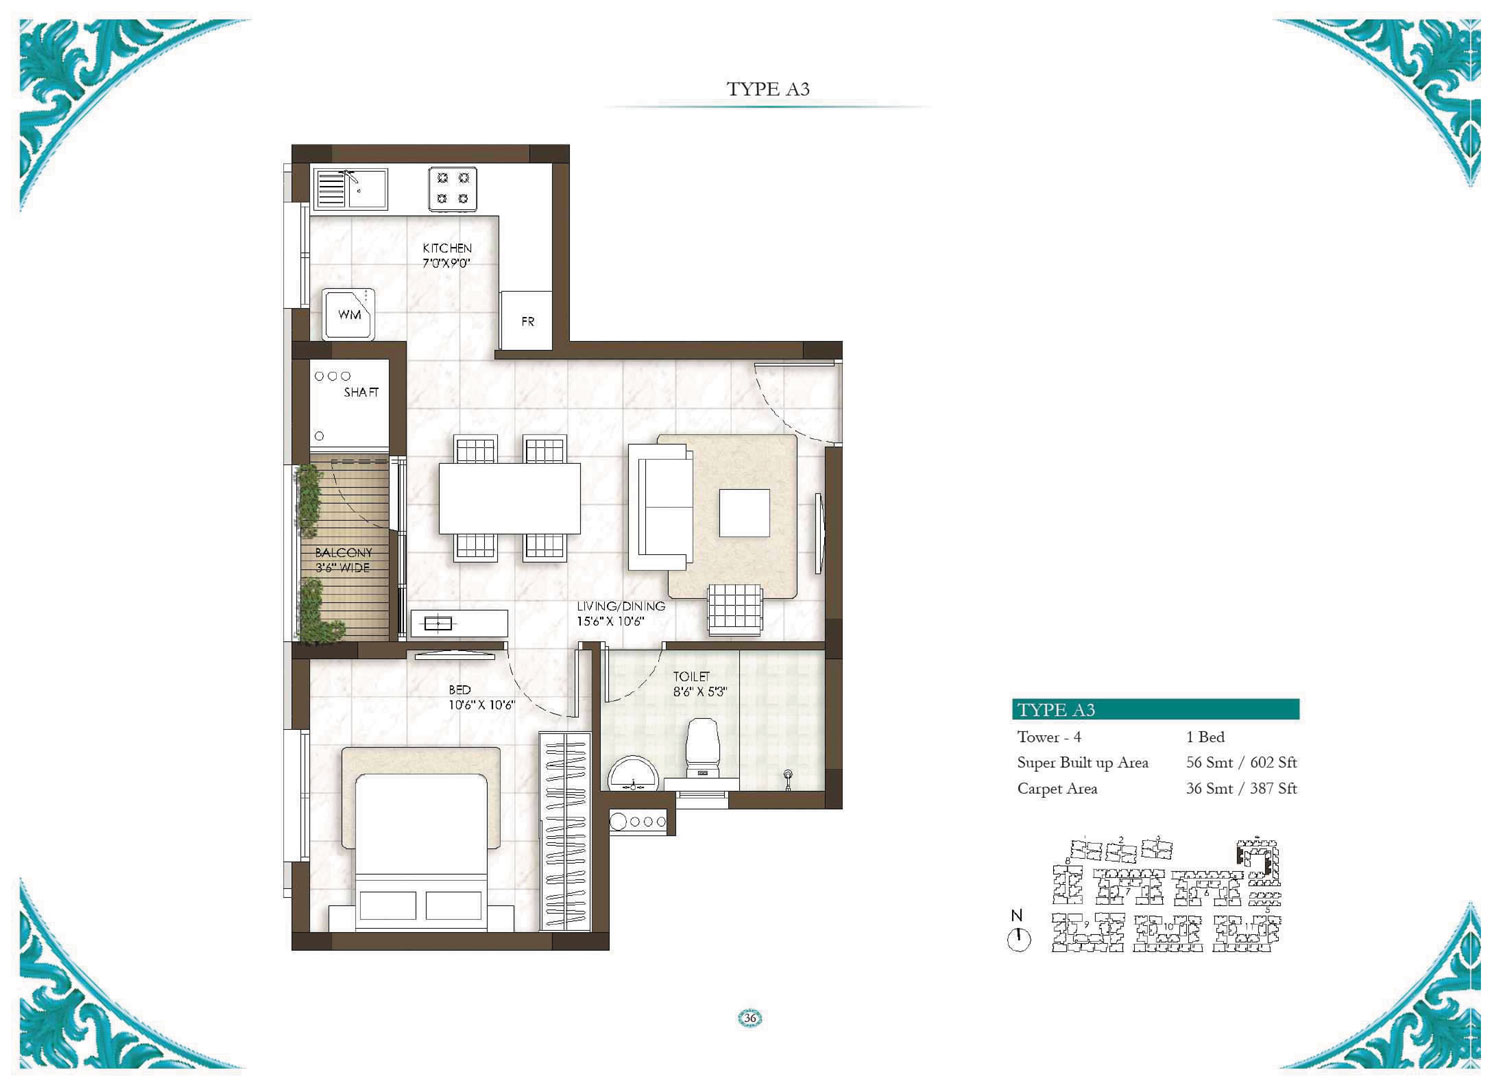 Type A3 - 1 Bed - 602 Sq Ft